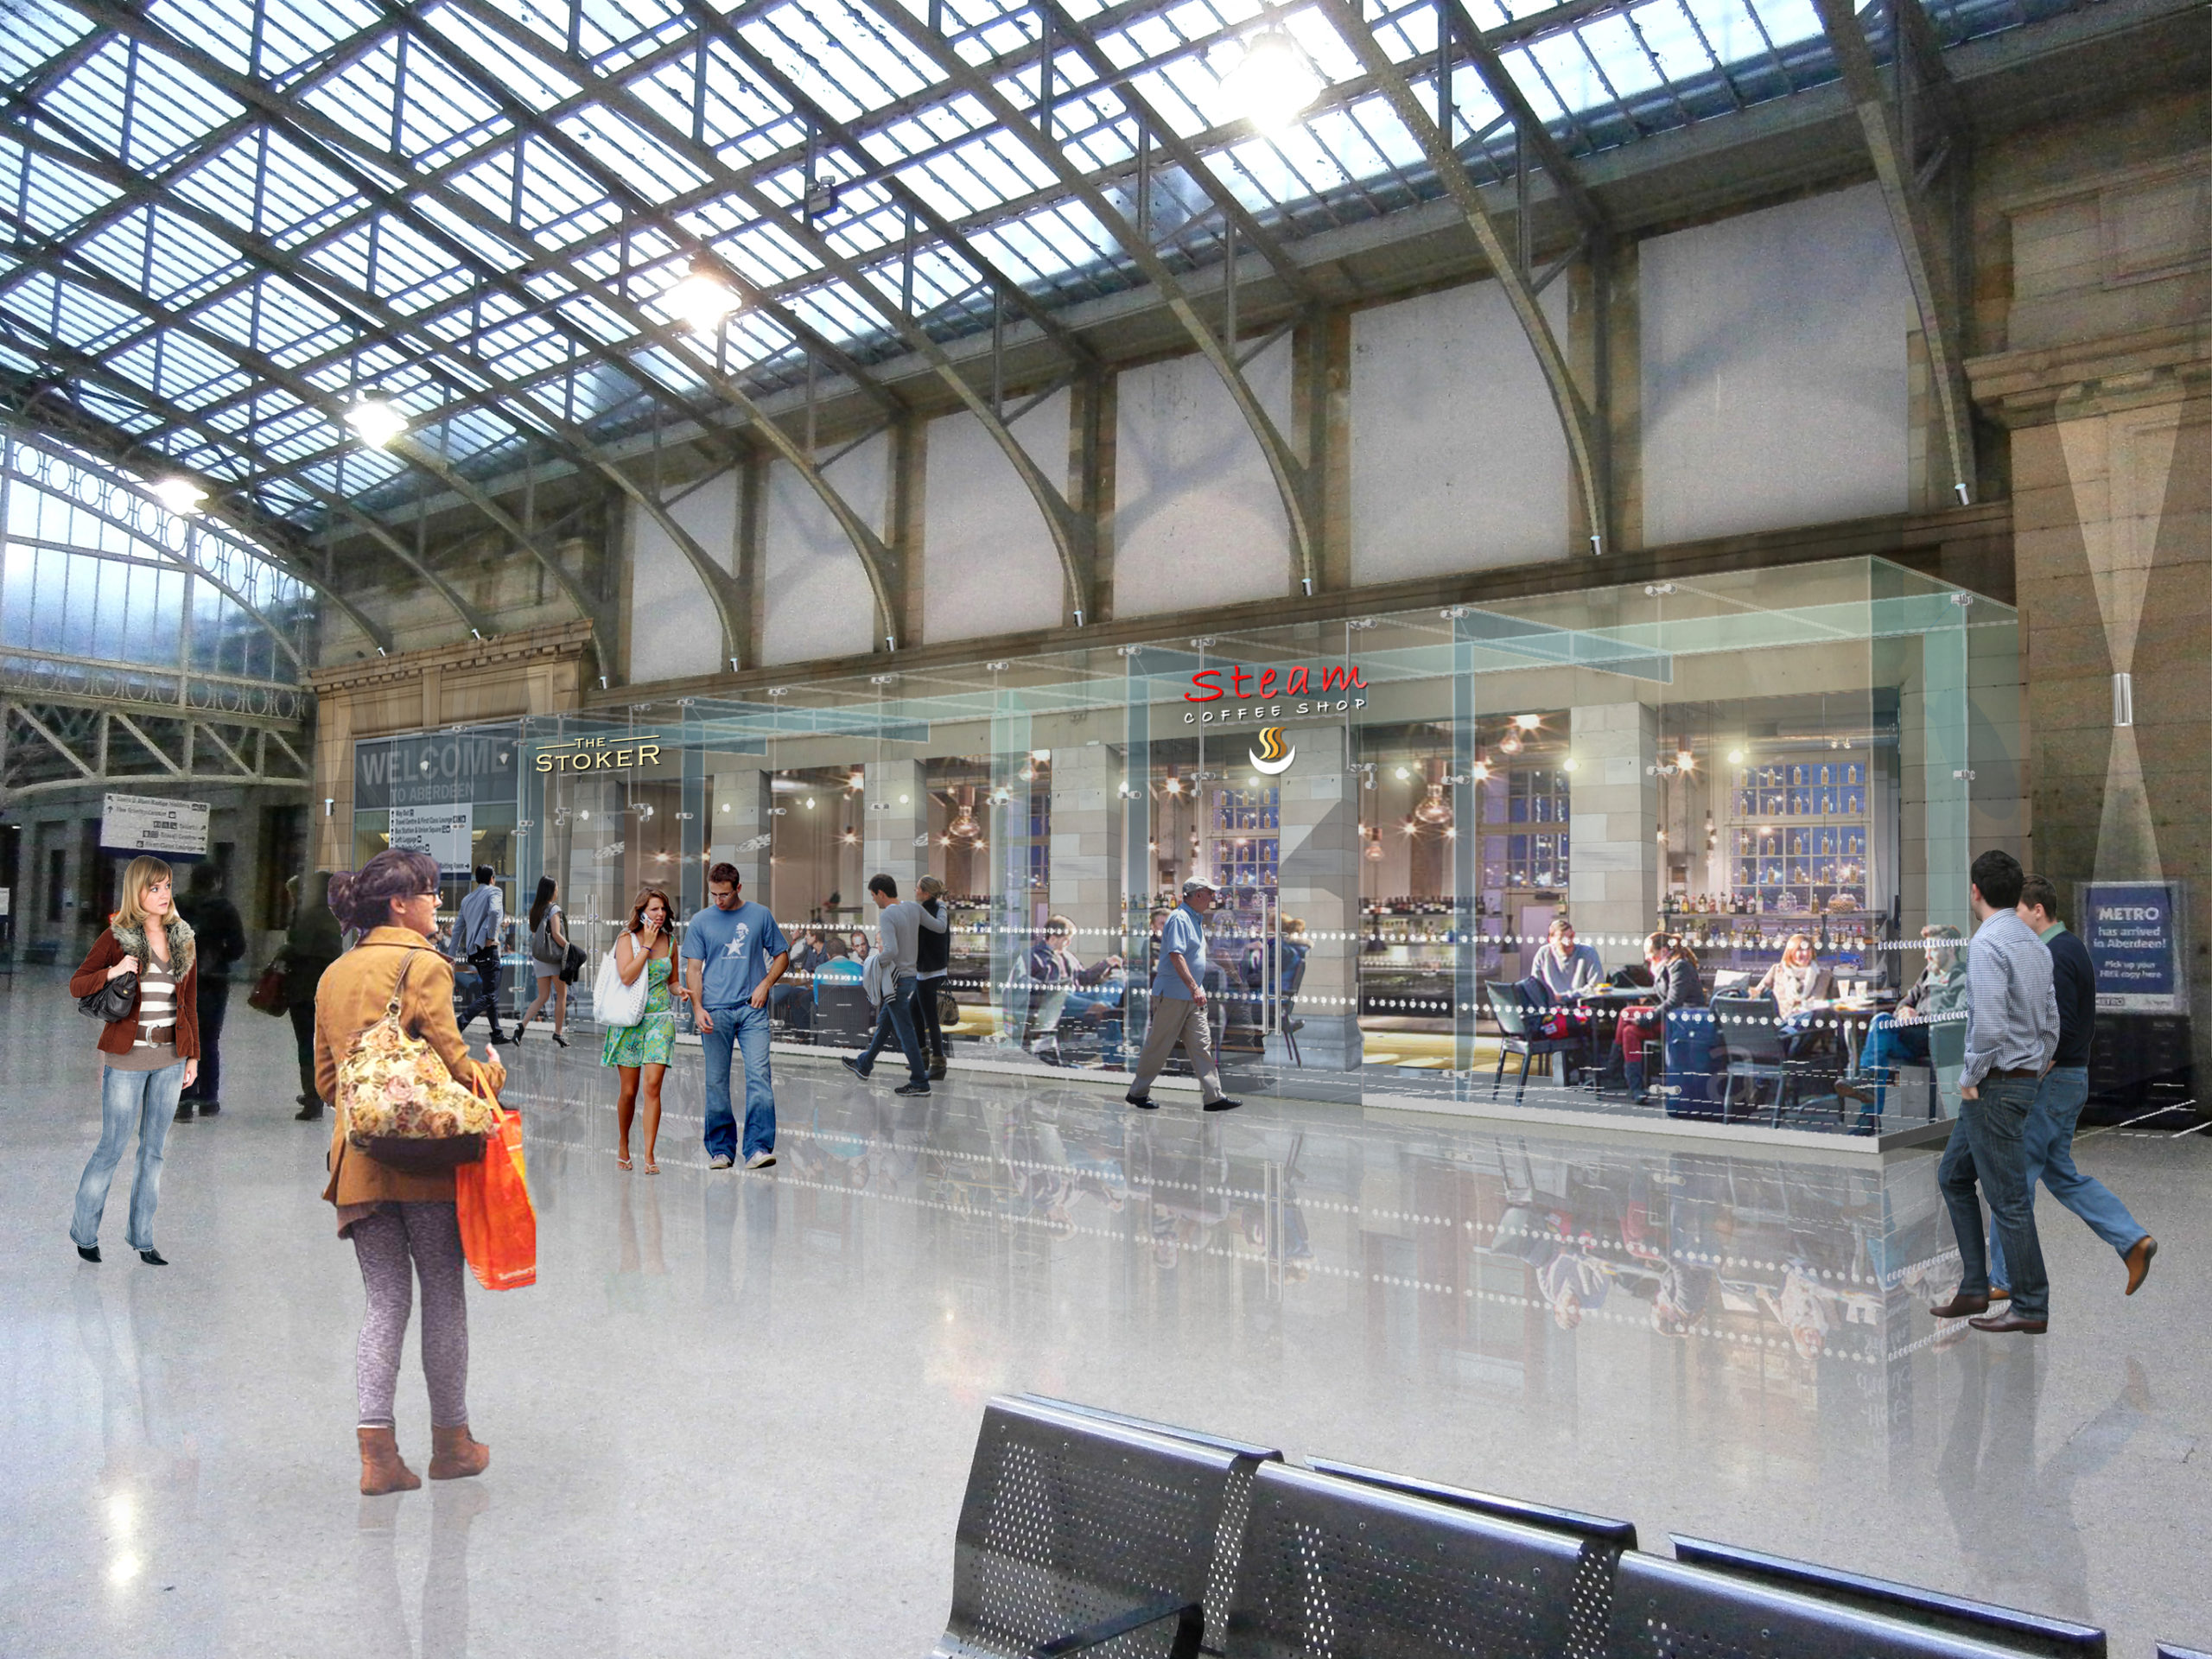 An artist's impression of how the concourse at Aberdeen train station will look after redevelopment.